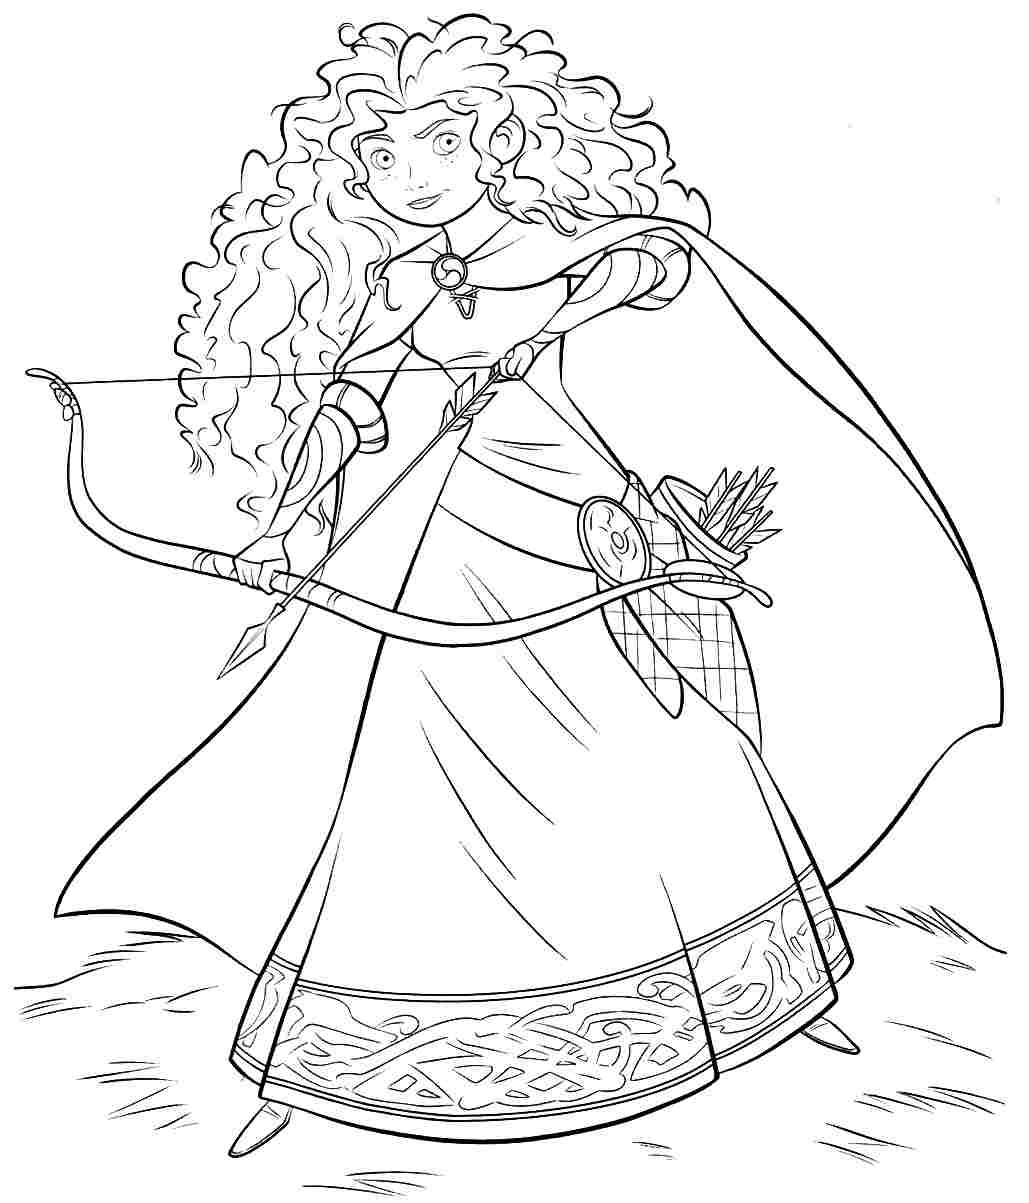 Free Disney Brave Coloring Pages Printabel | free printable coloring pages disney princesses